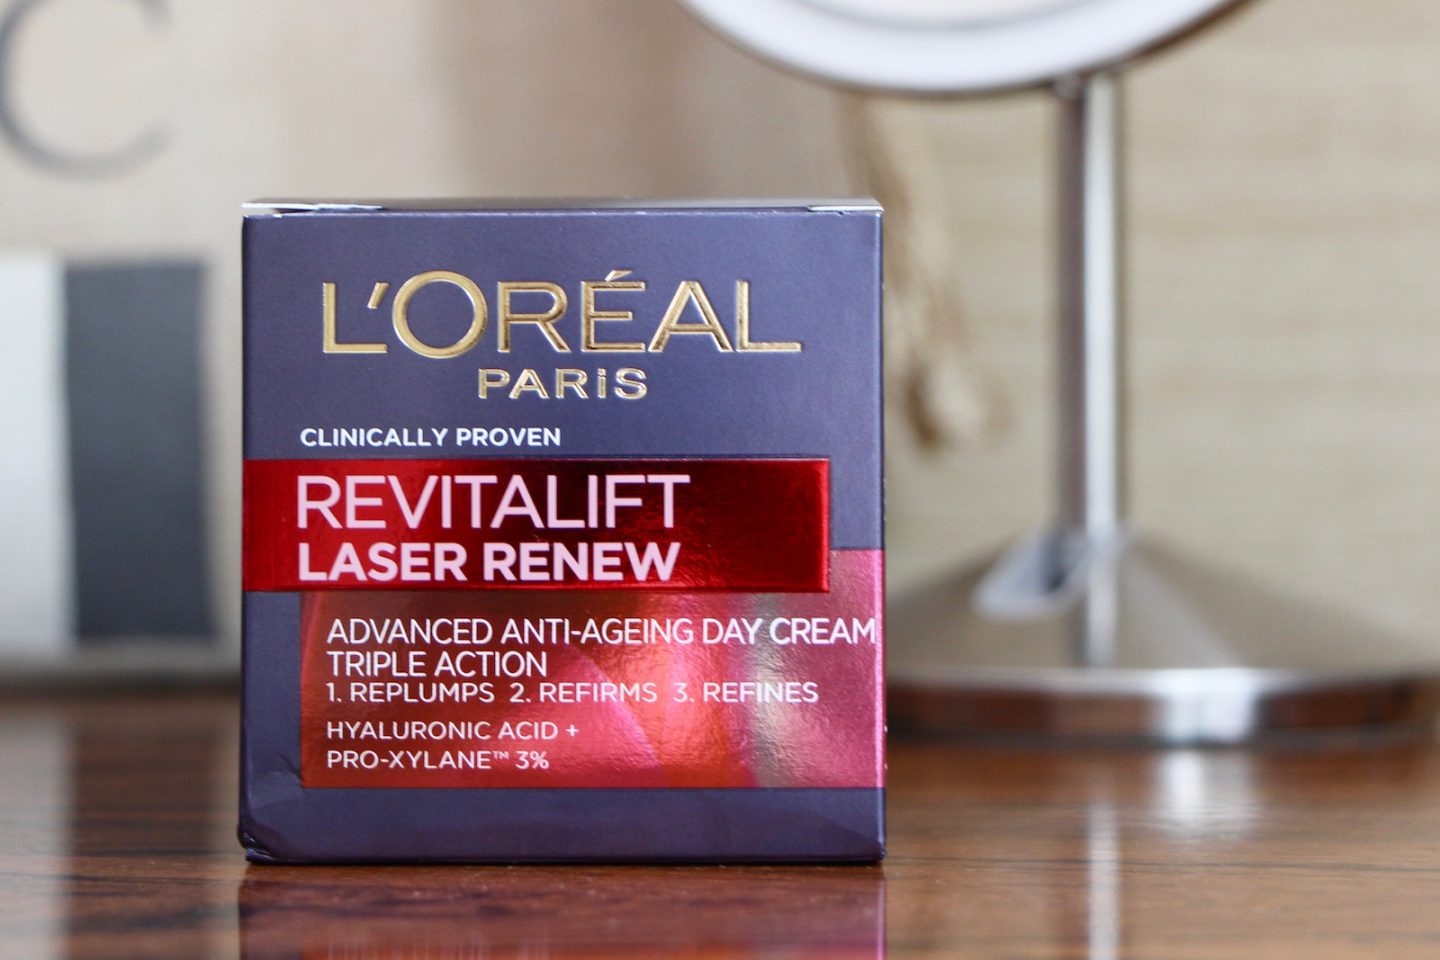 L'Oreal Paris Revitalift Laser Renew Day Cream Review